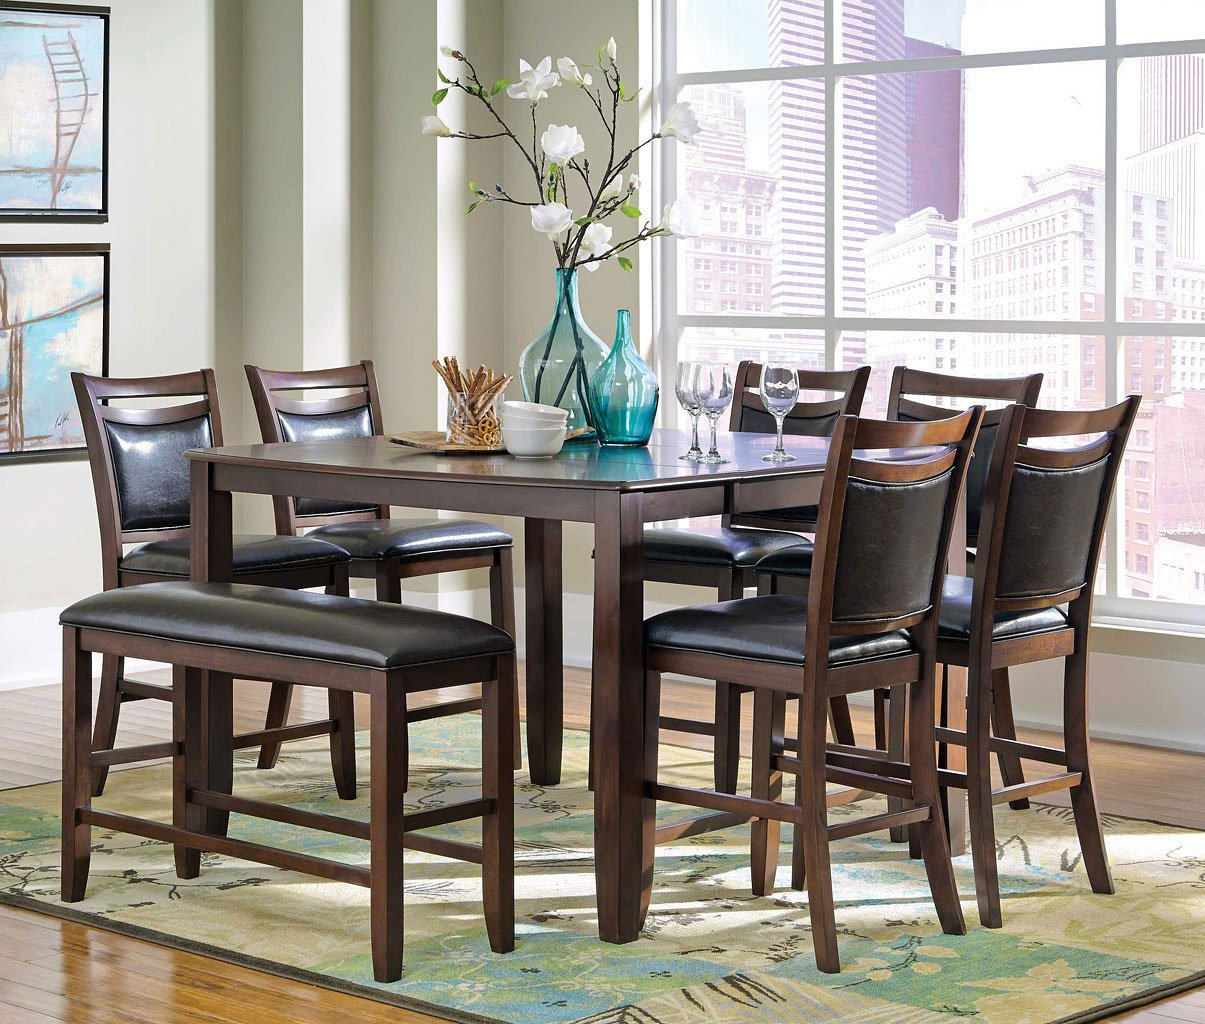 Dupree counter height dining room set casual dining sets dining room and kitchen furniture - Casual kitchen sets ...